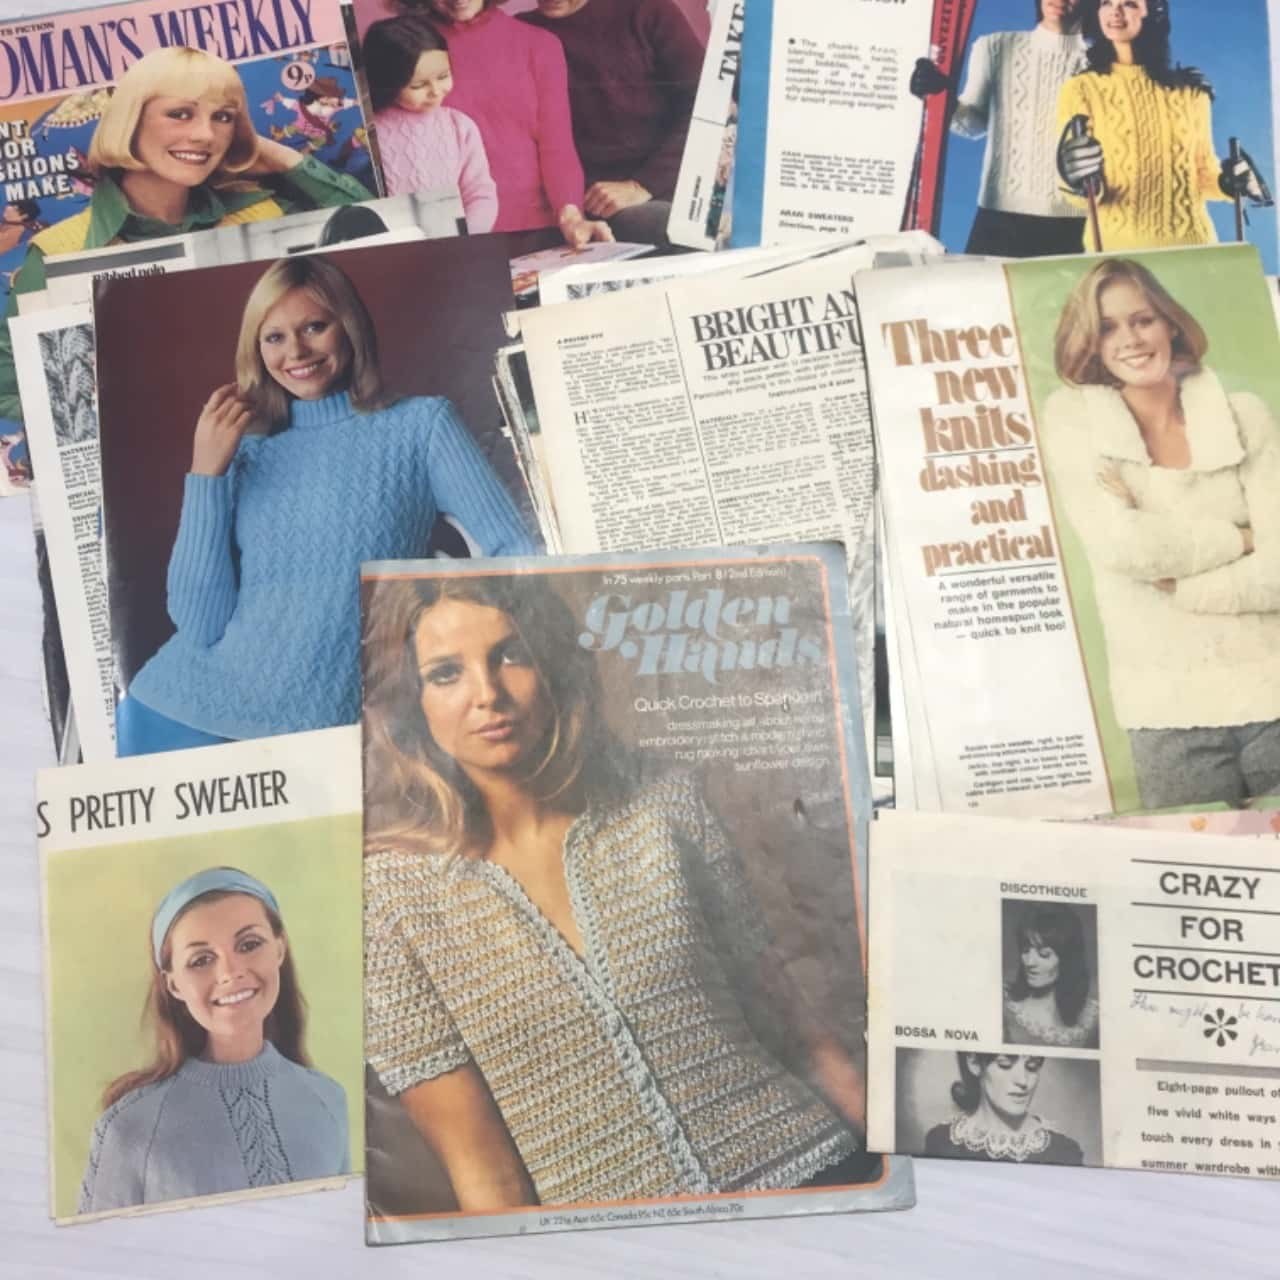 Collection of Vintage Retro Knitting Crochet Craft Clippings